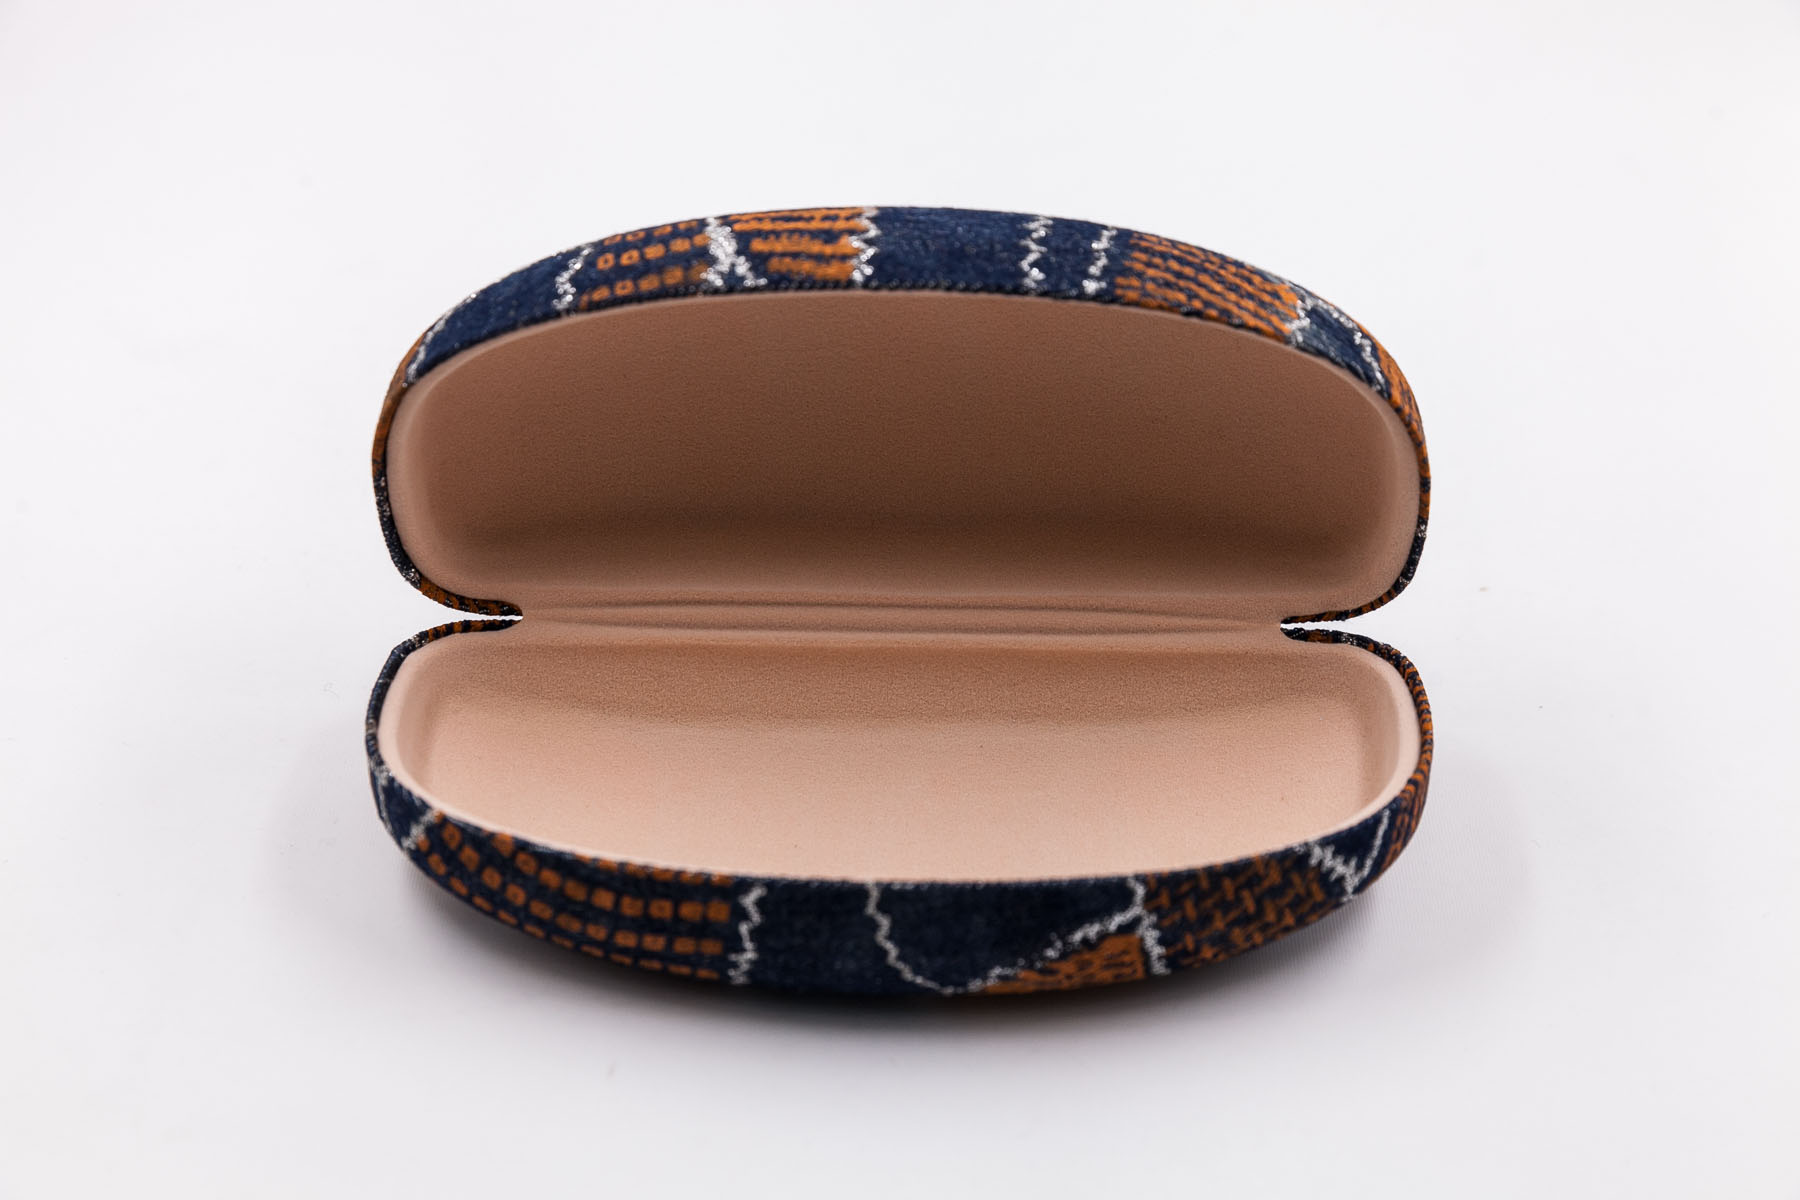 2021 Glasses Case A Sunglasses Case with An Irregular Animal Skin Pattern Printed on It